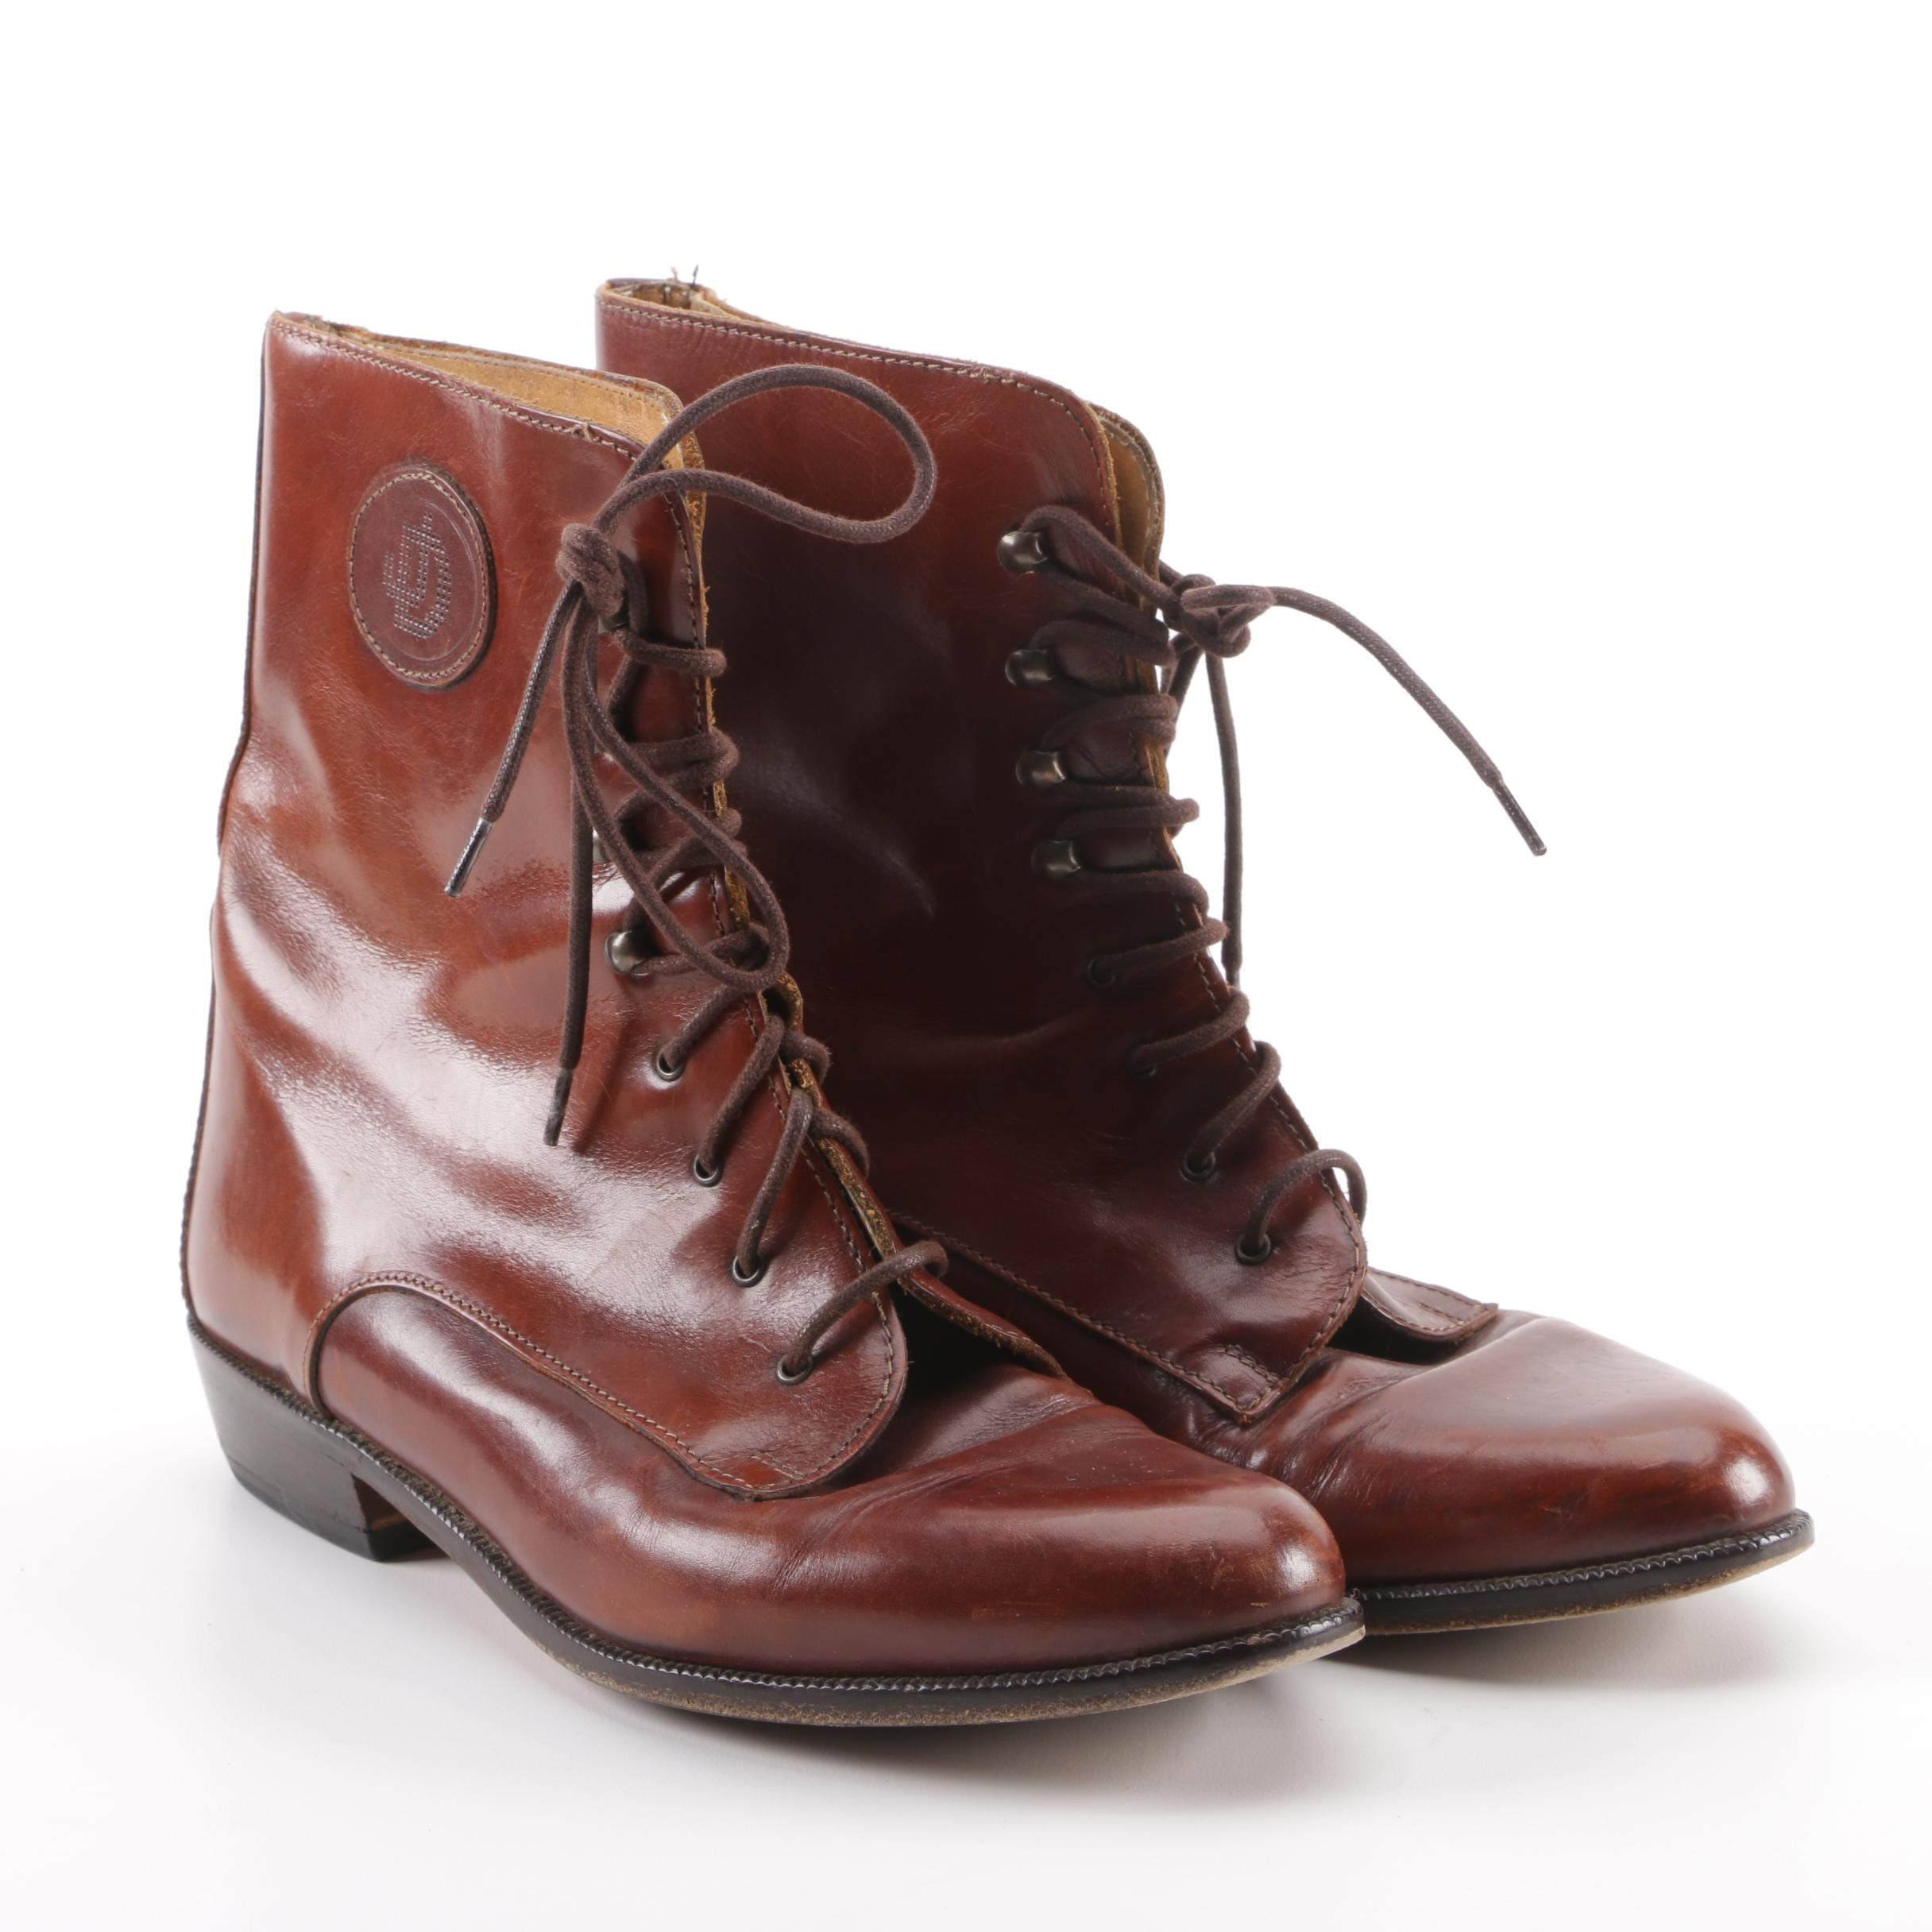 Joan & David Brown Leather Ankle Boots